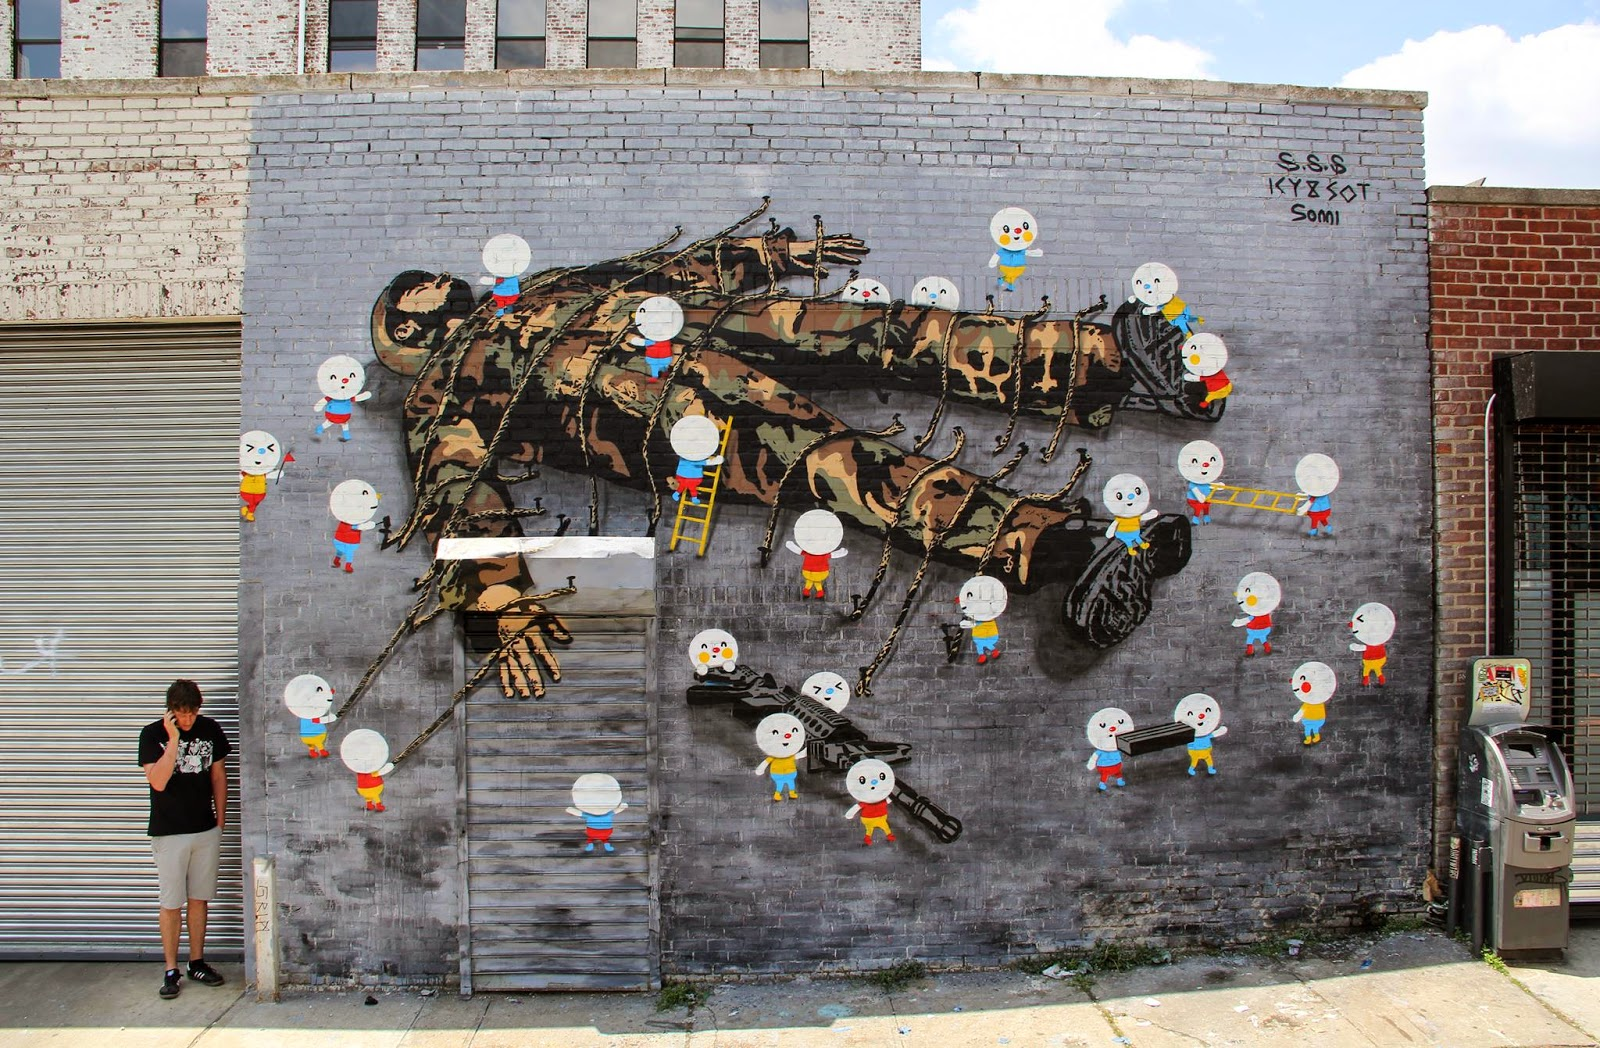 Icy and Sot recently teamed up with Sonni to work on this new collaboration on the streets of New York City.